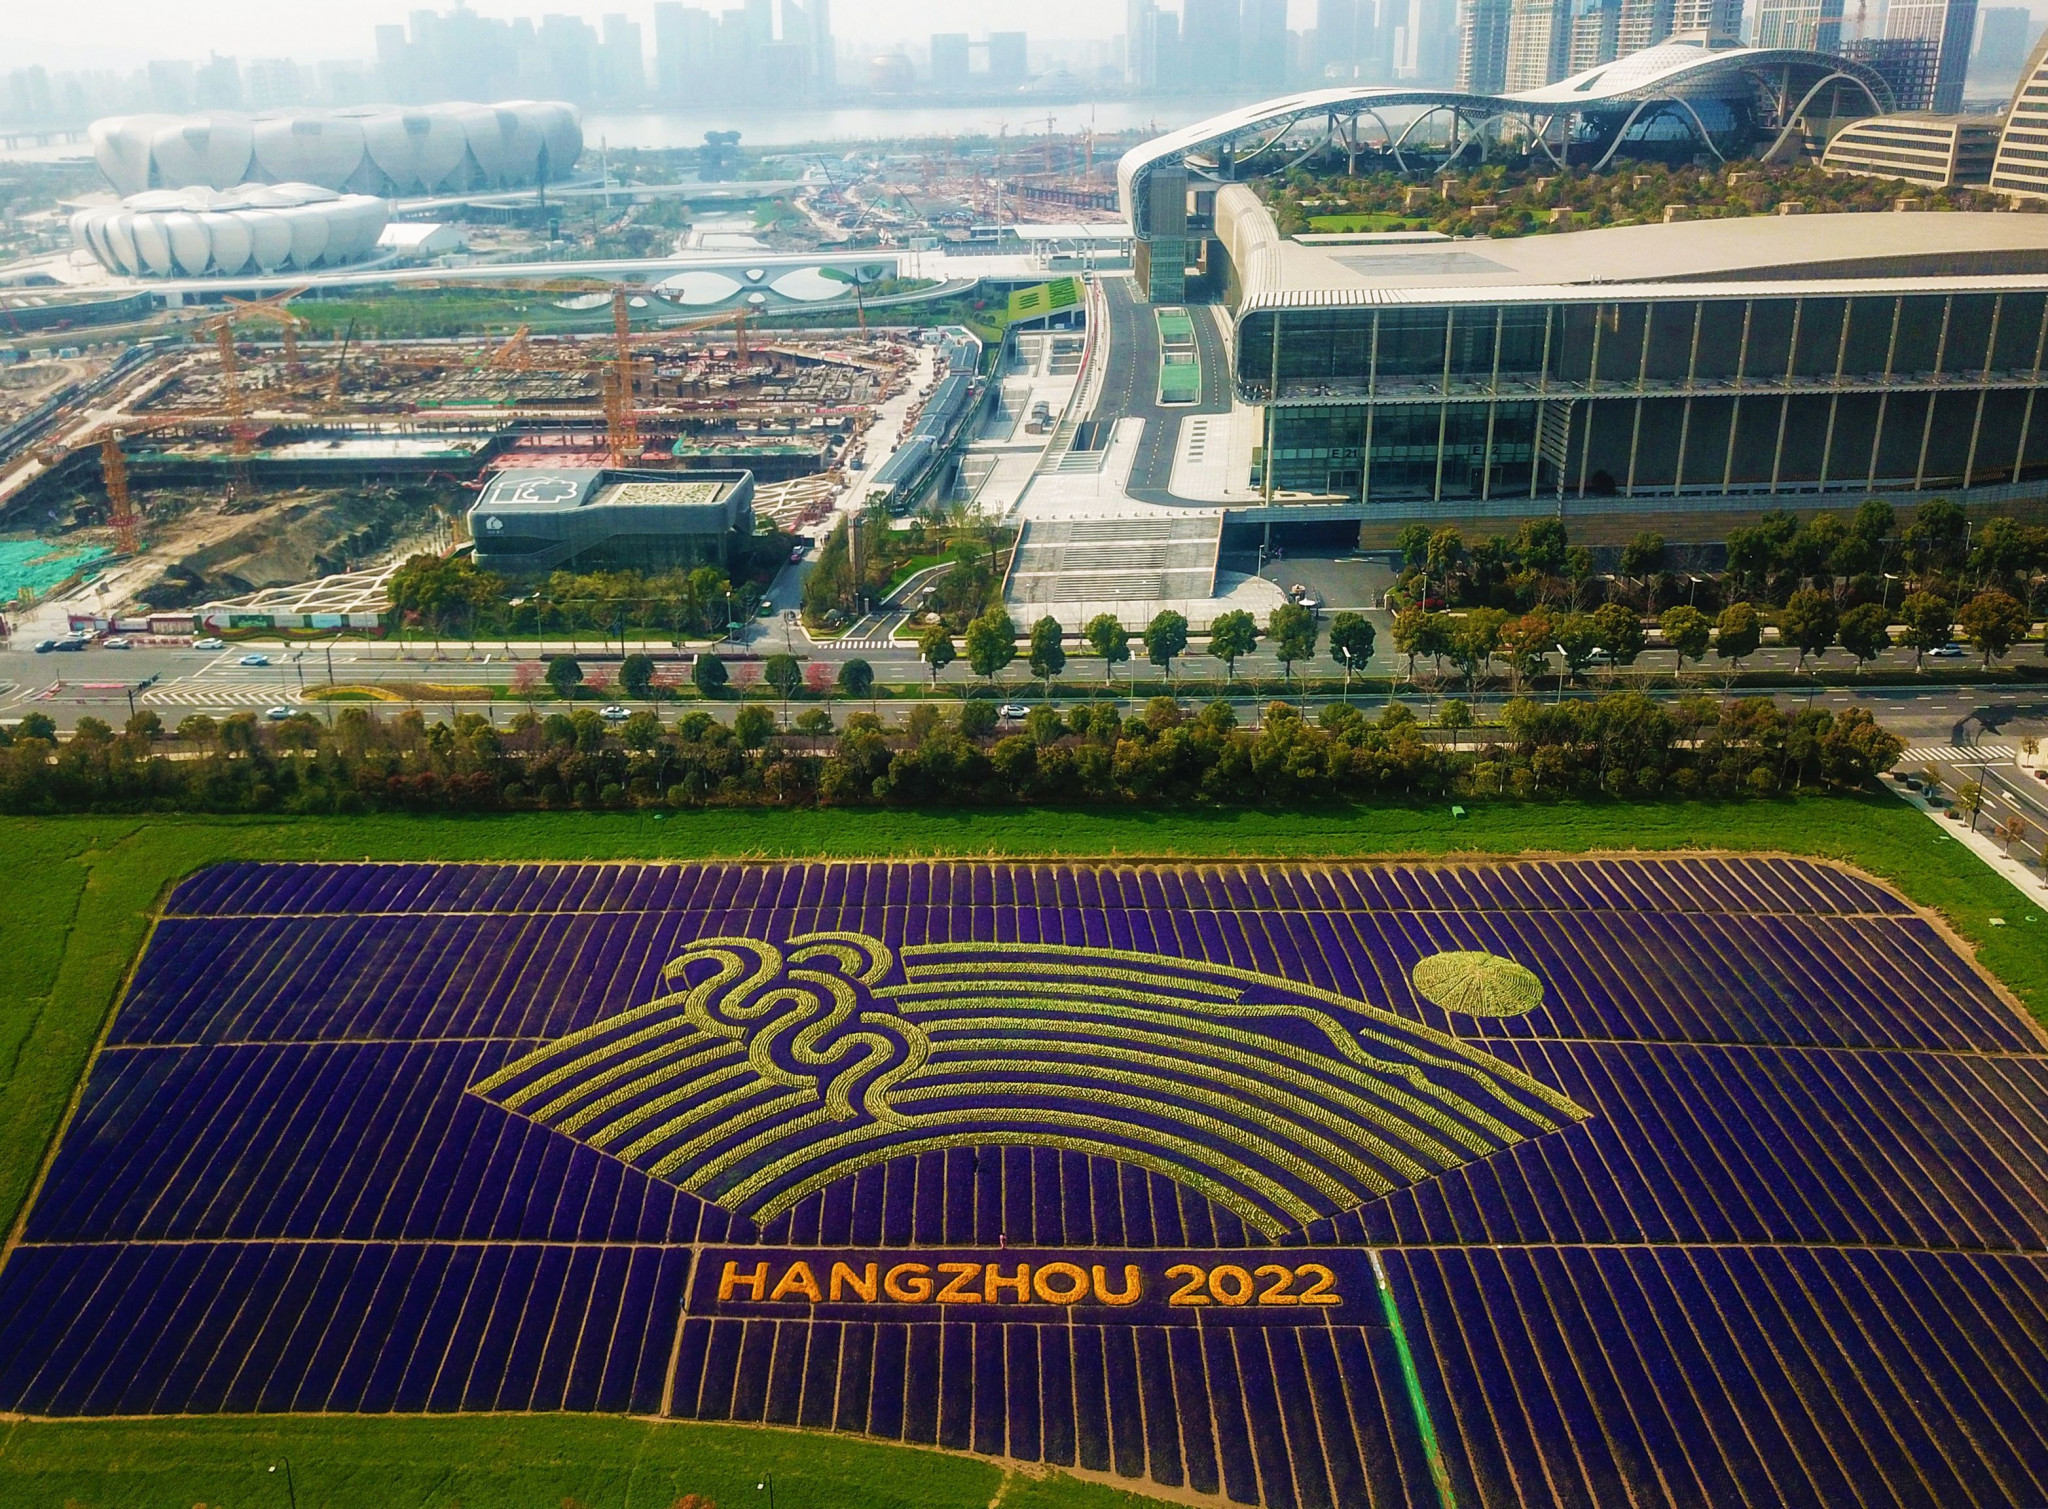 National Olympic Committees to meet prior to Hangzhou 2022 Asian Games